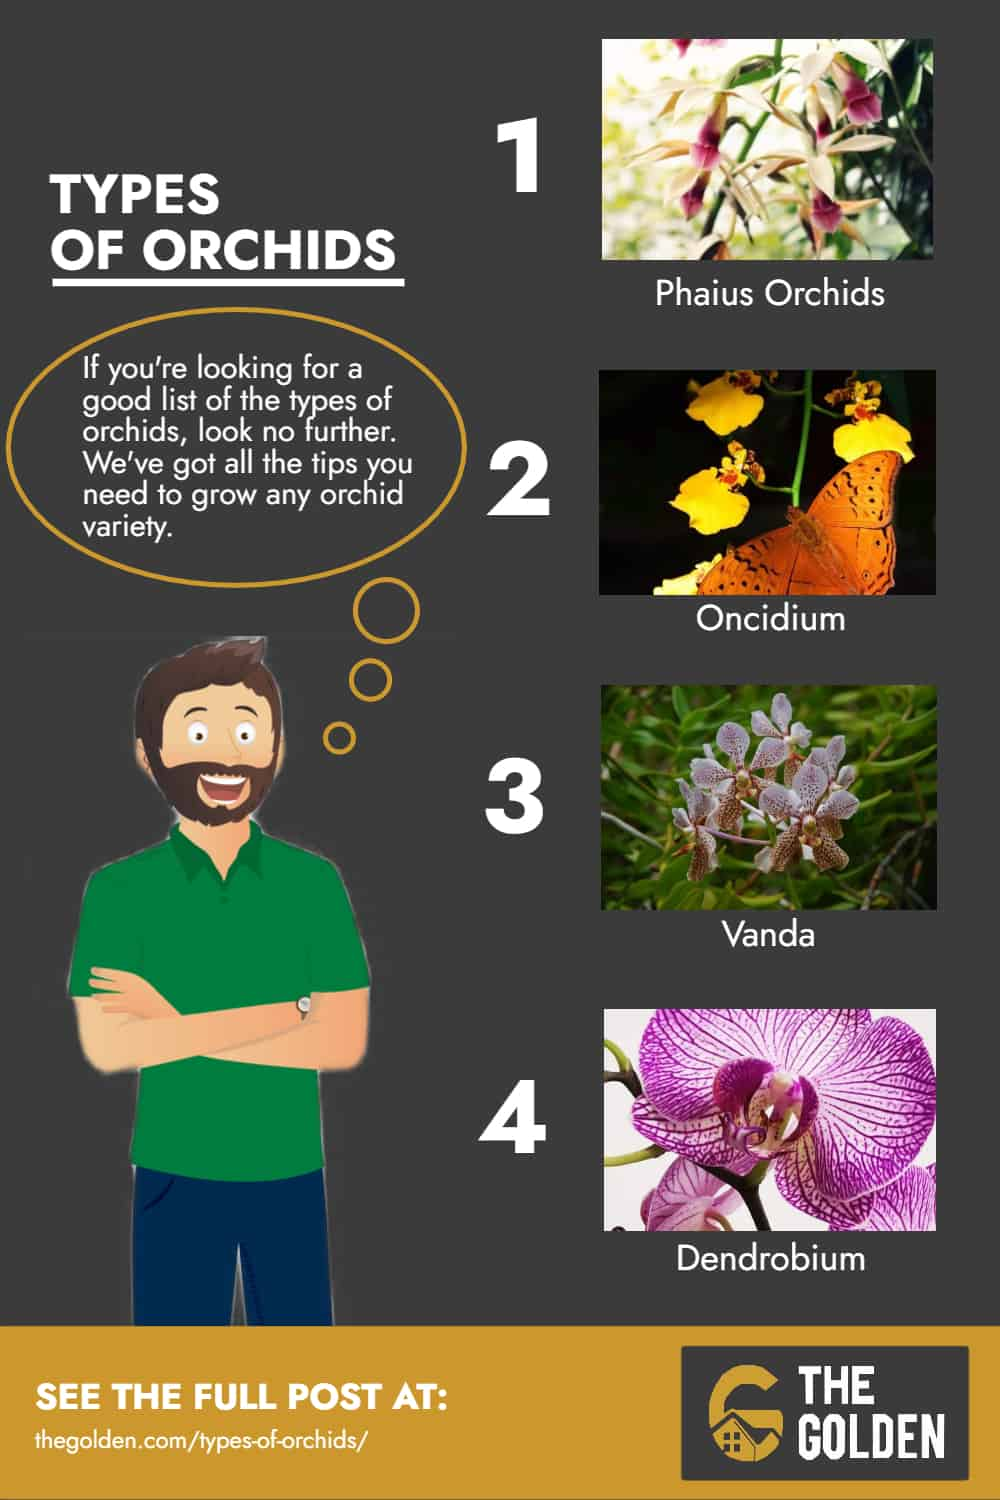 Types of Orchids Infographic